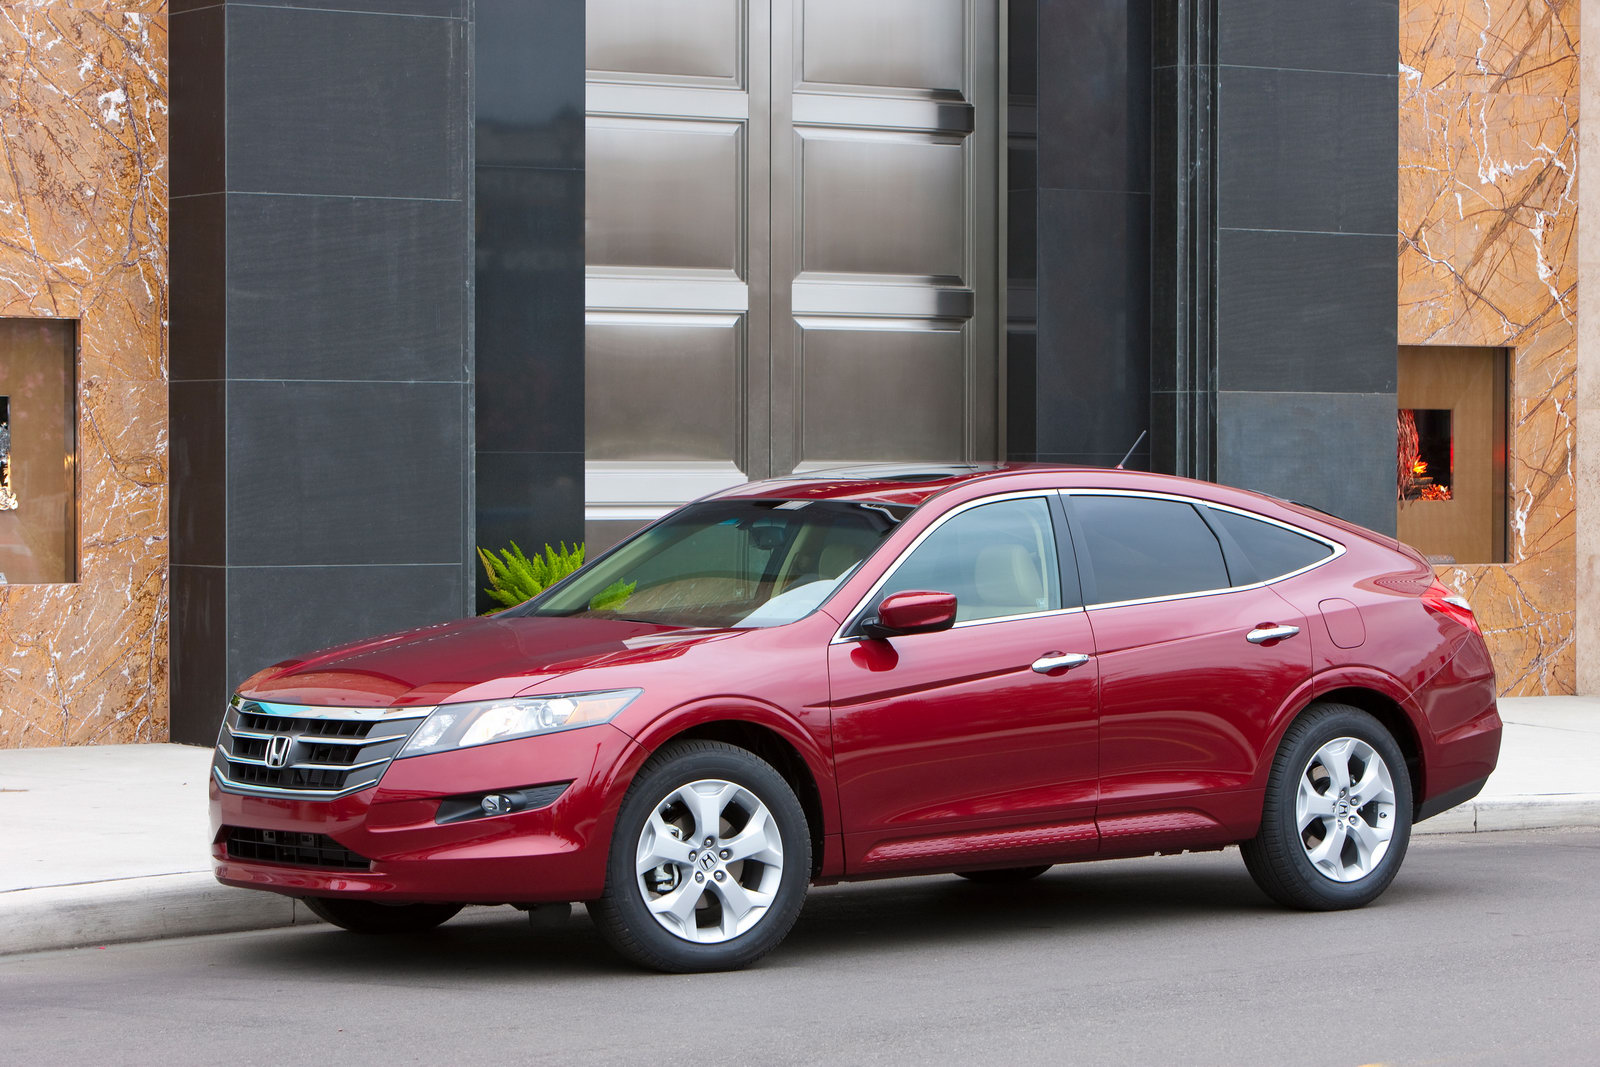 2011 Honda Accord Crosstour Price Photos Specificatios